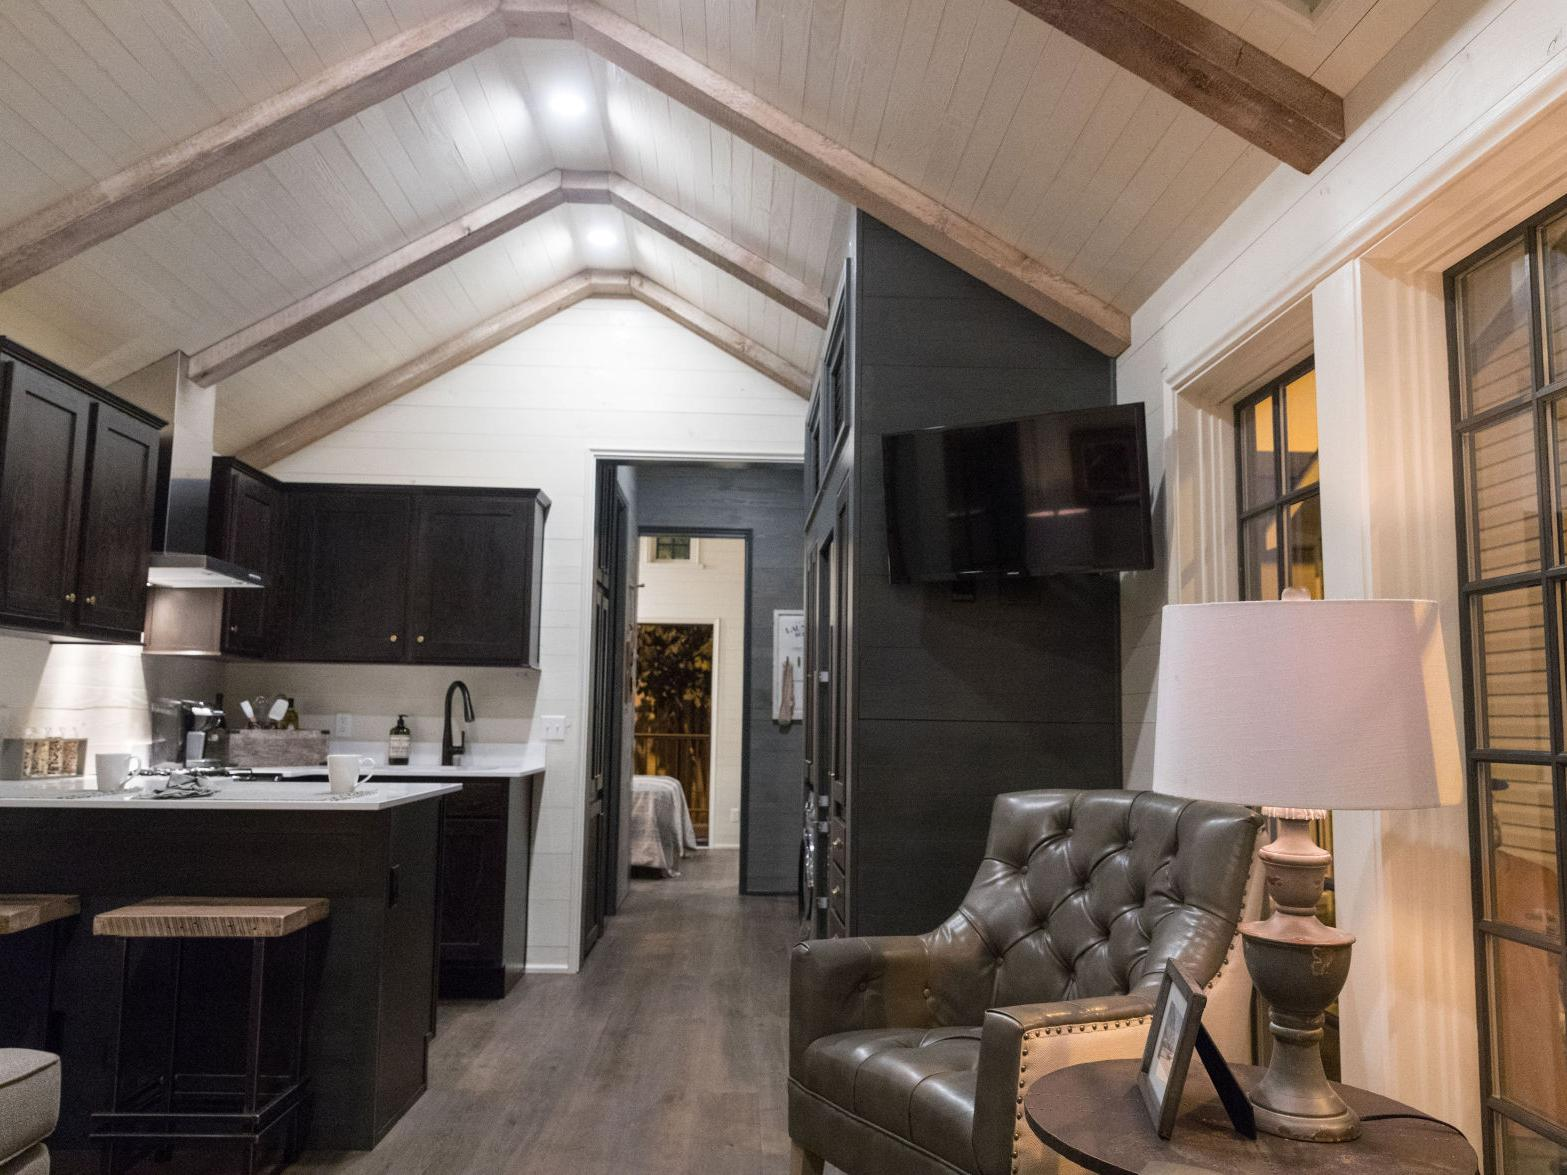 Putting together tiny houses is a big job for Berkshire subsidiary